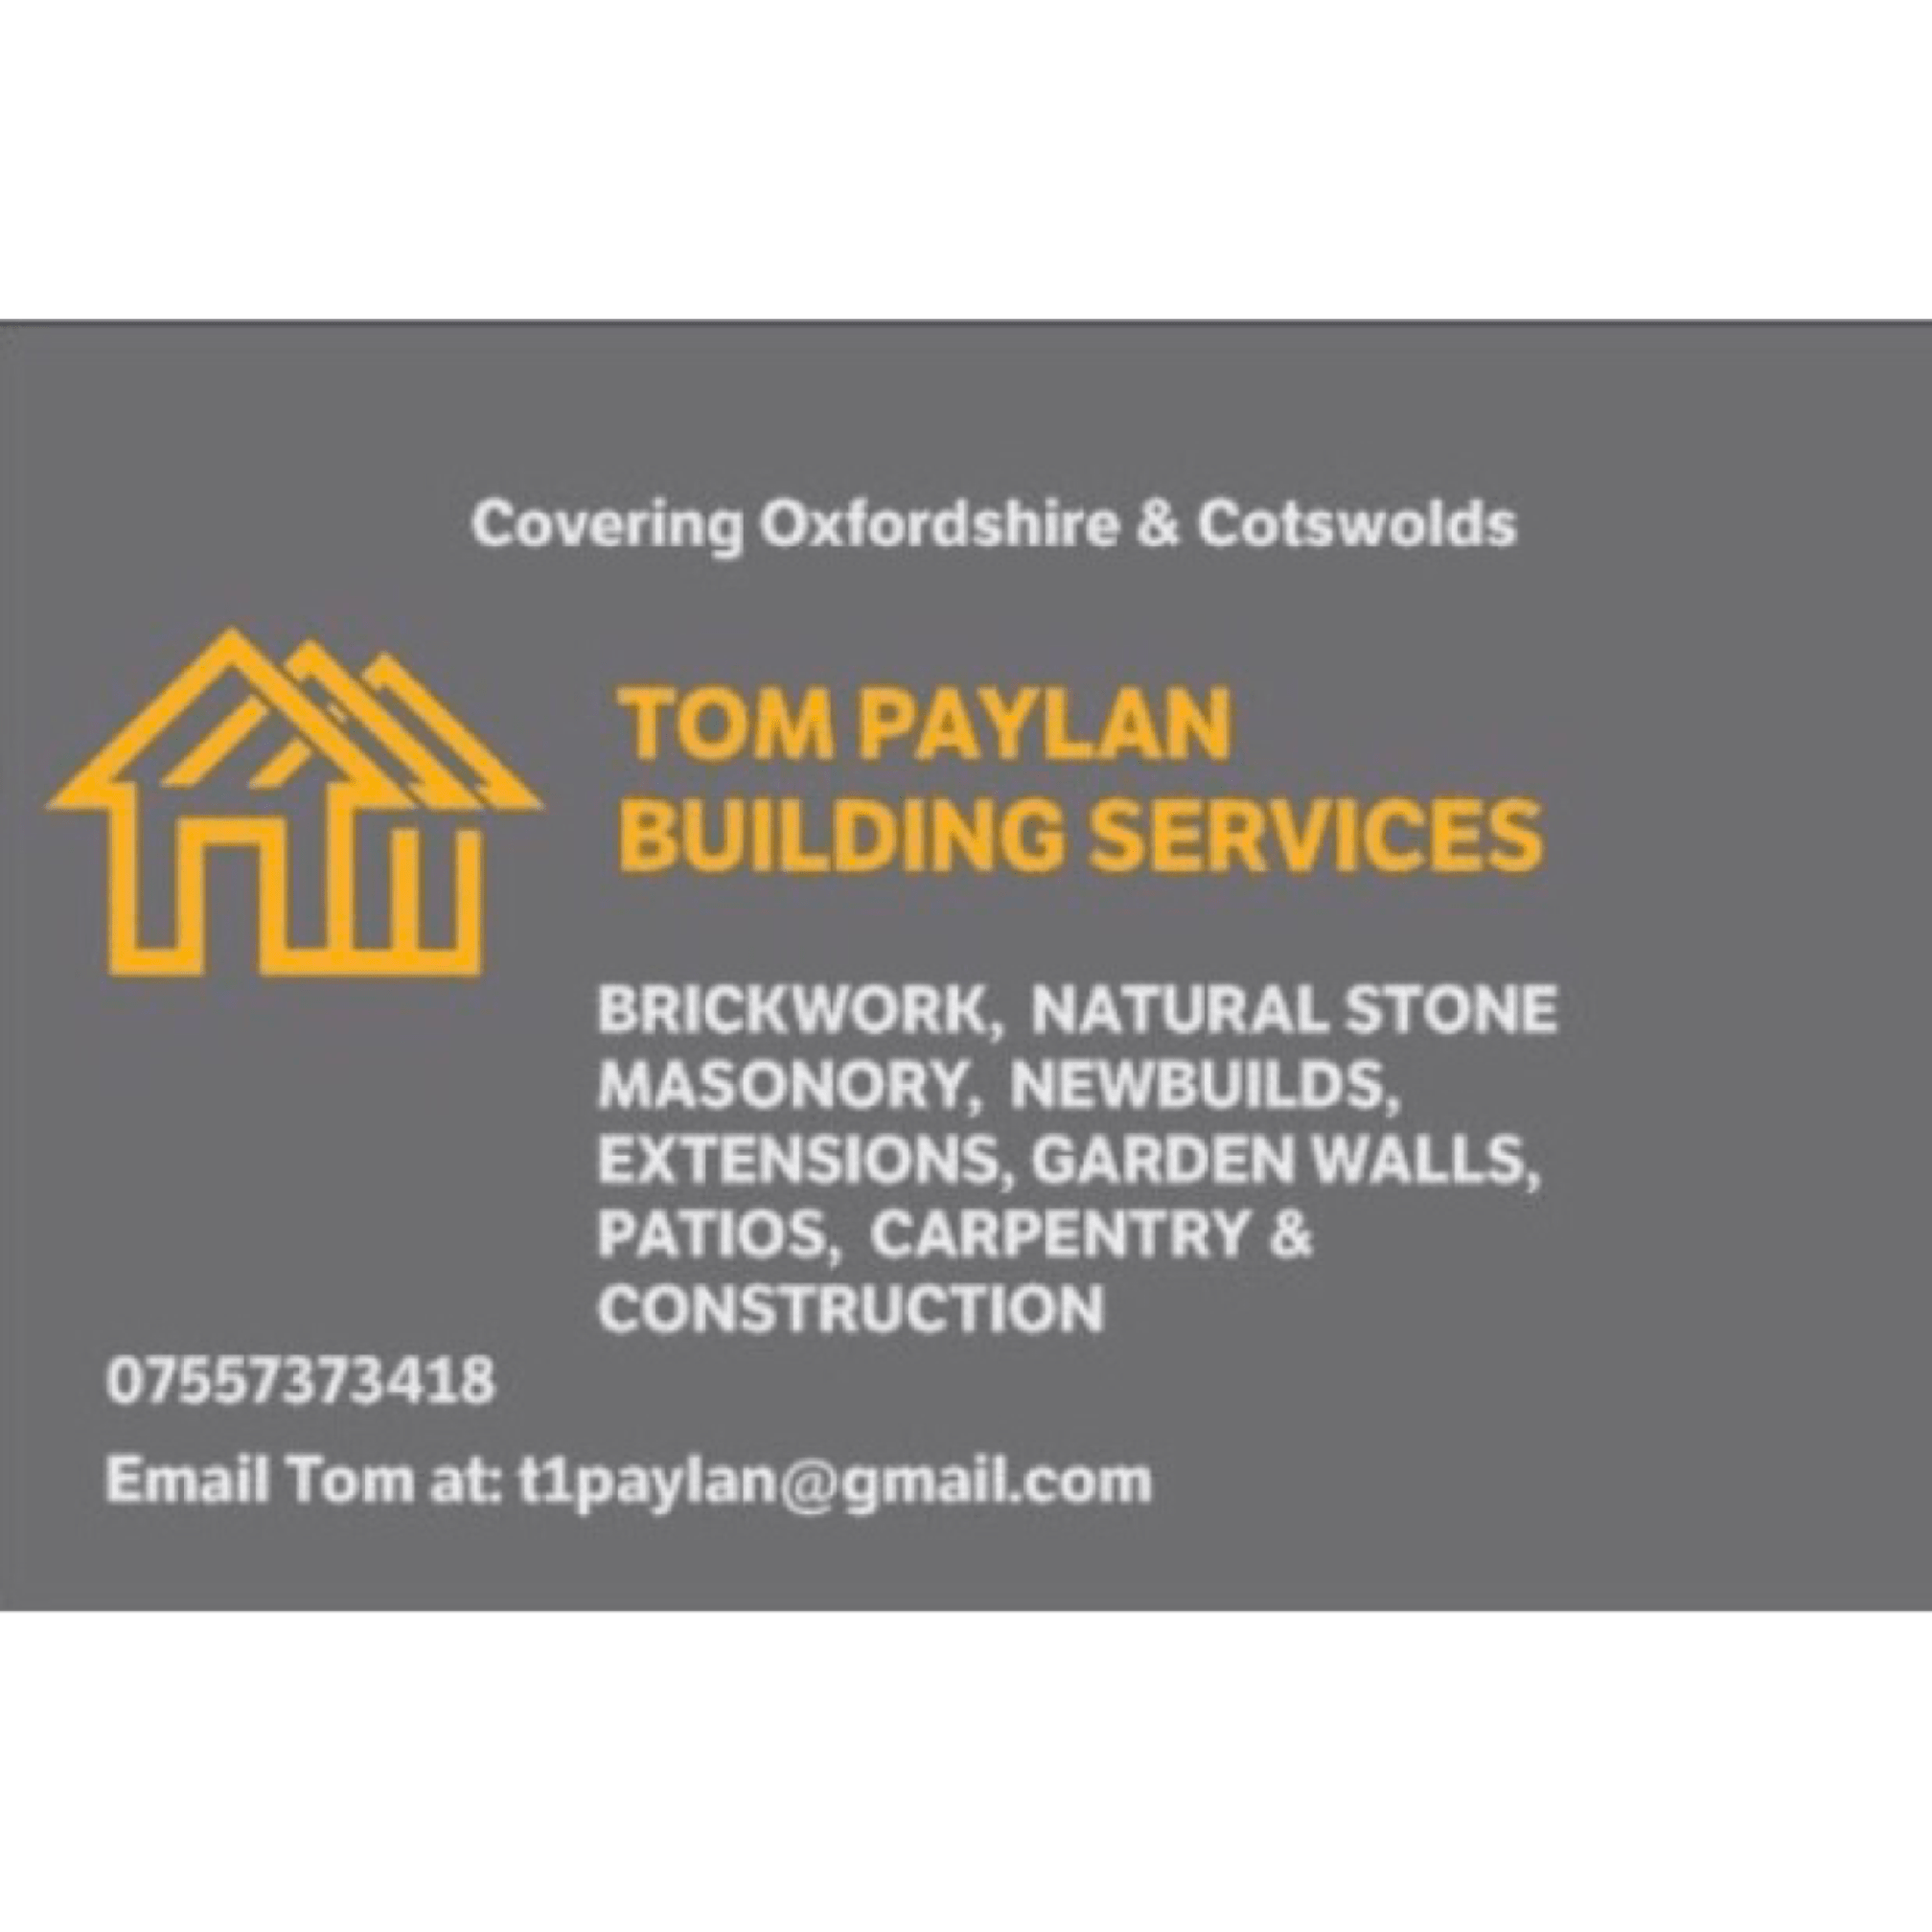 Tom Paylan Brickwork & Building | Holloway Rd, Witney OX28 6NE | +44 7557 373418